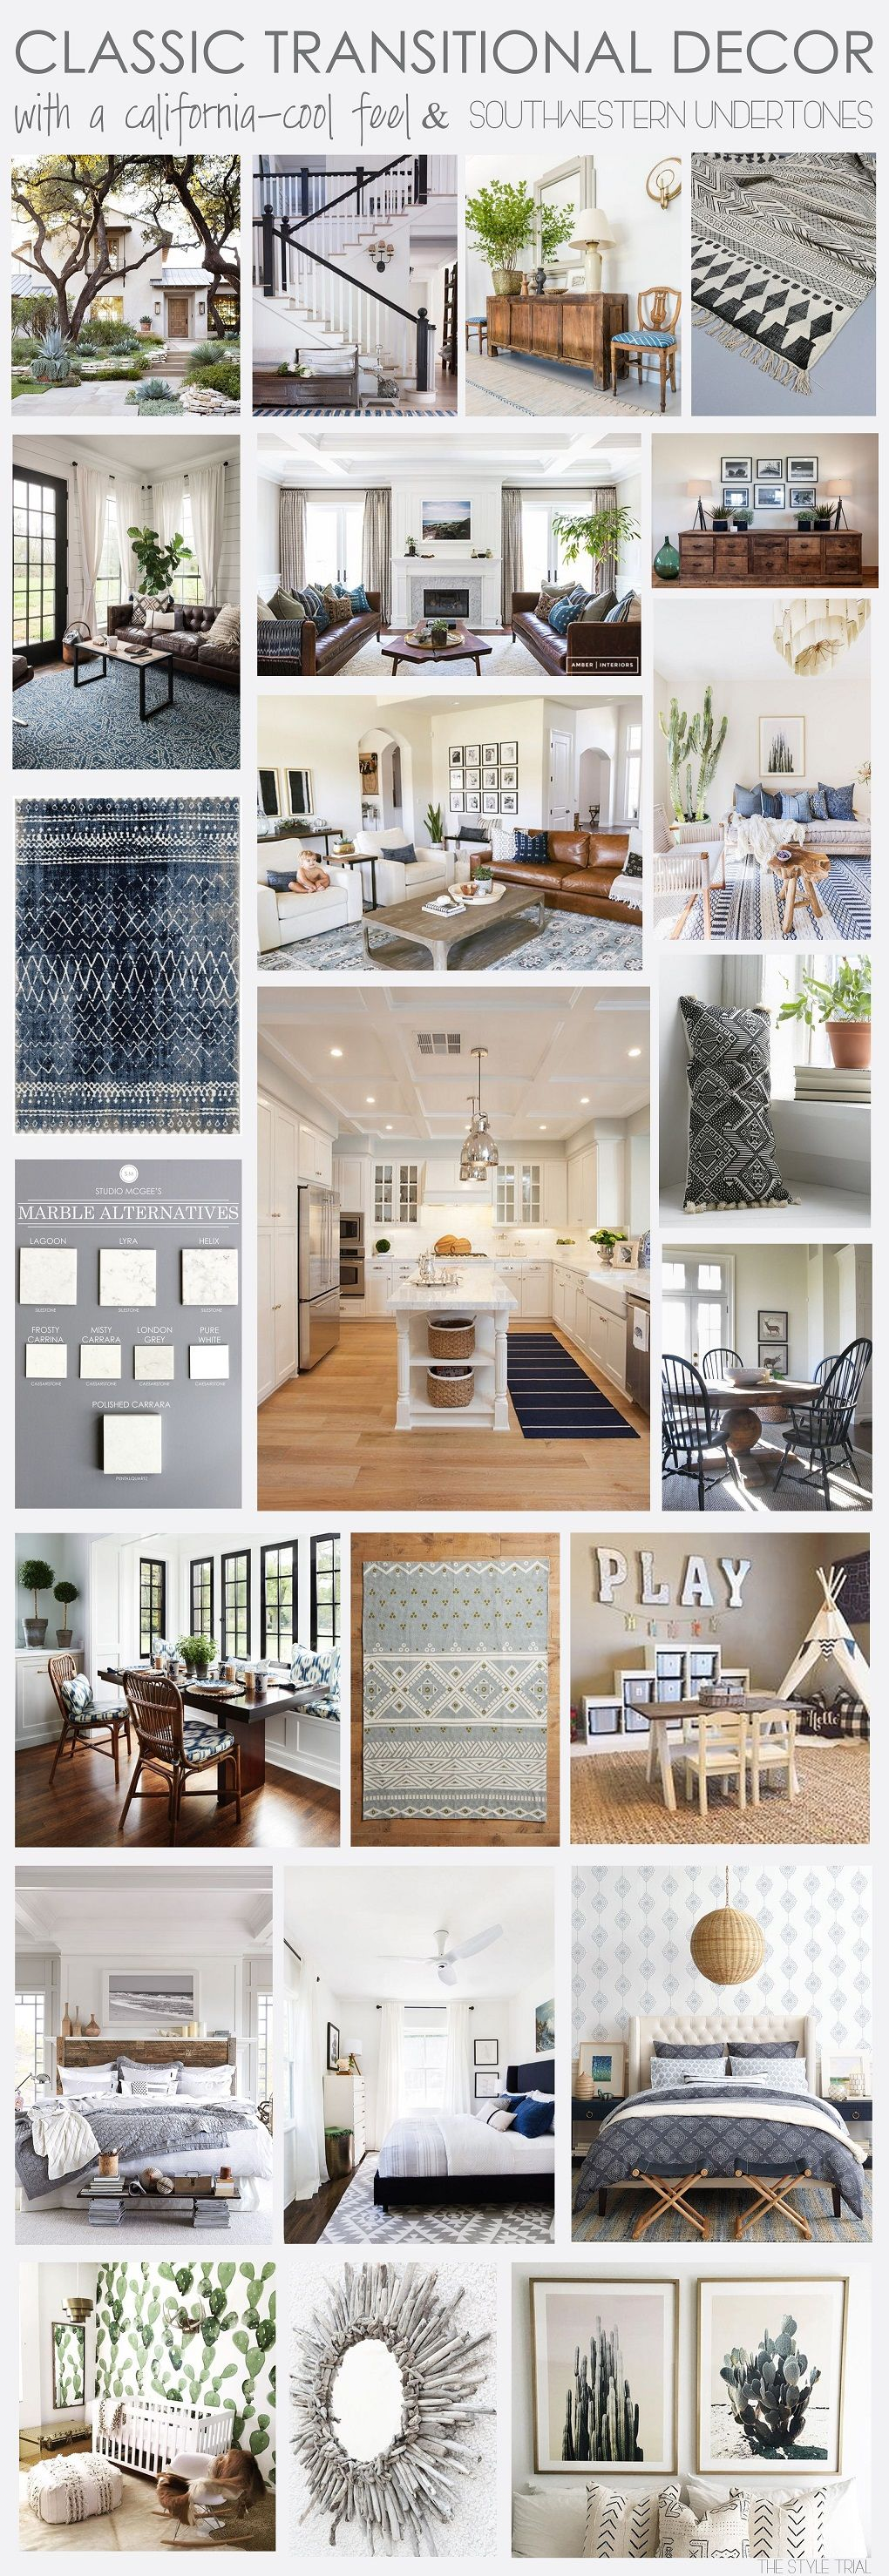 Classic transitional decor with a California-cool feel and ...